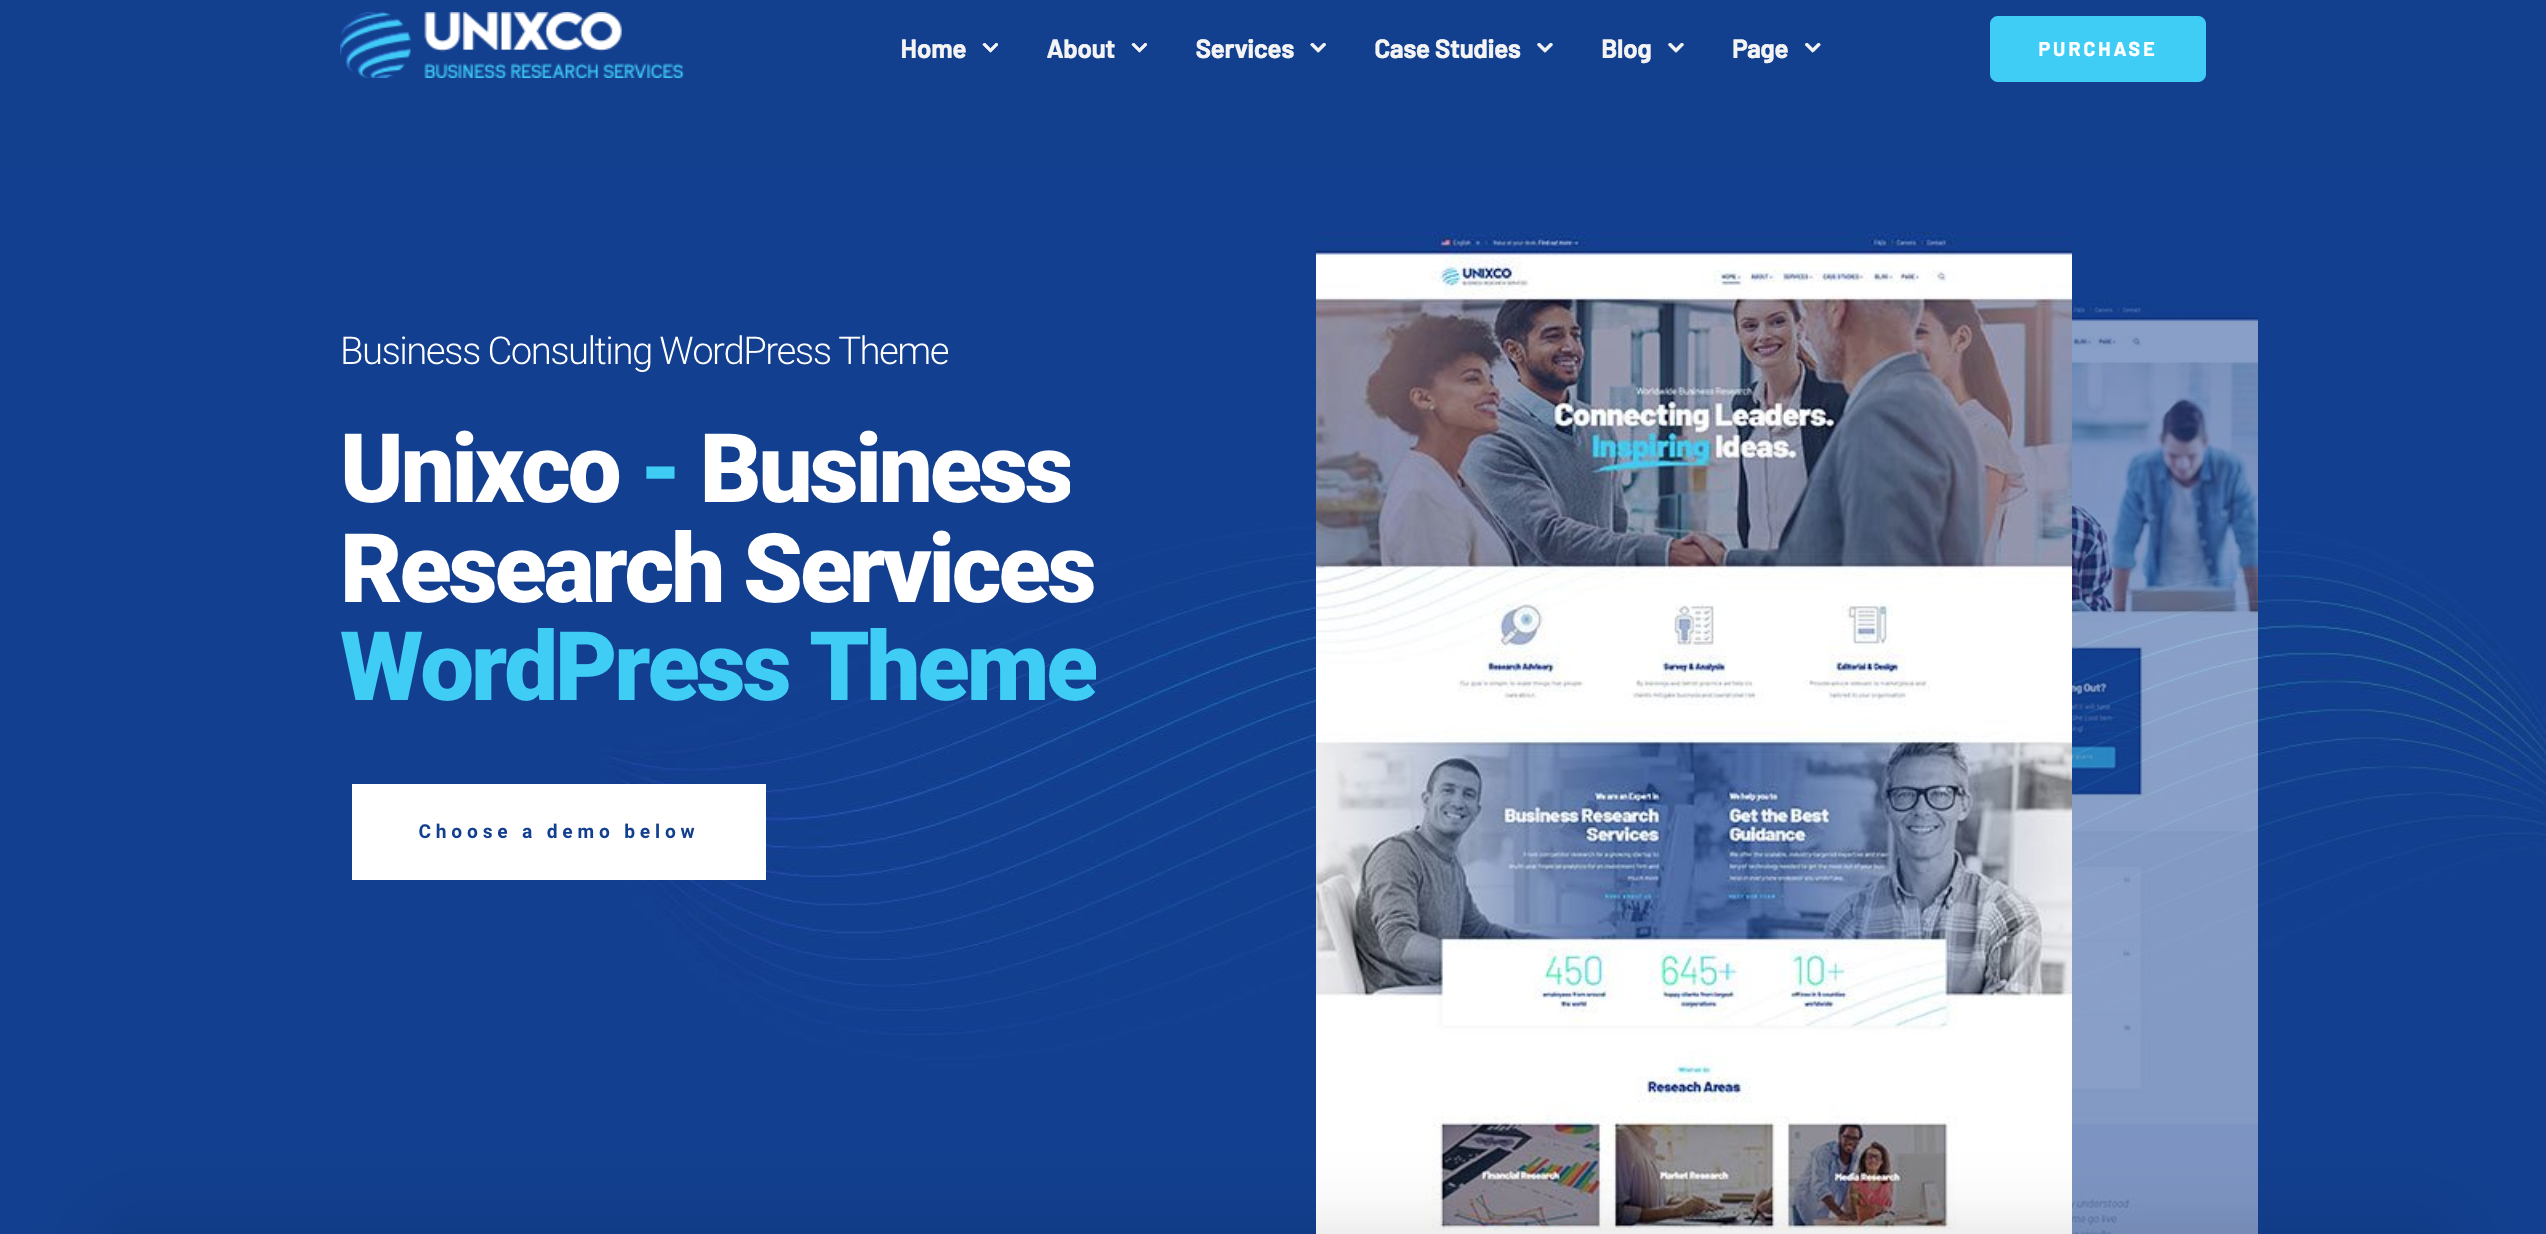 Unixco - Business Research Services WordPress Theme